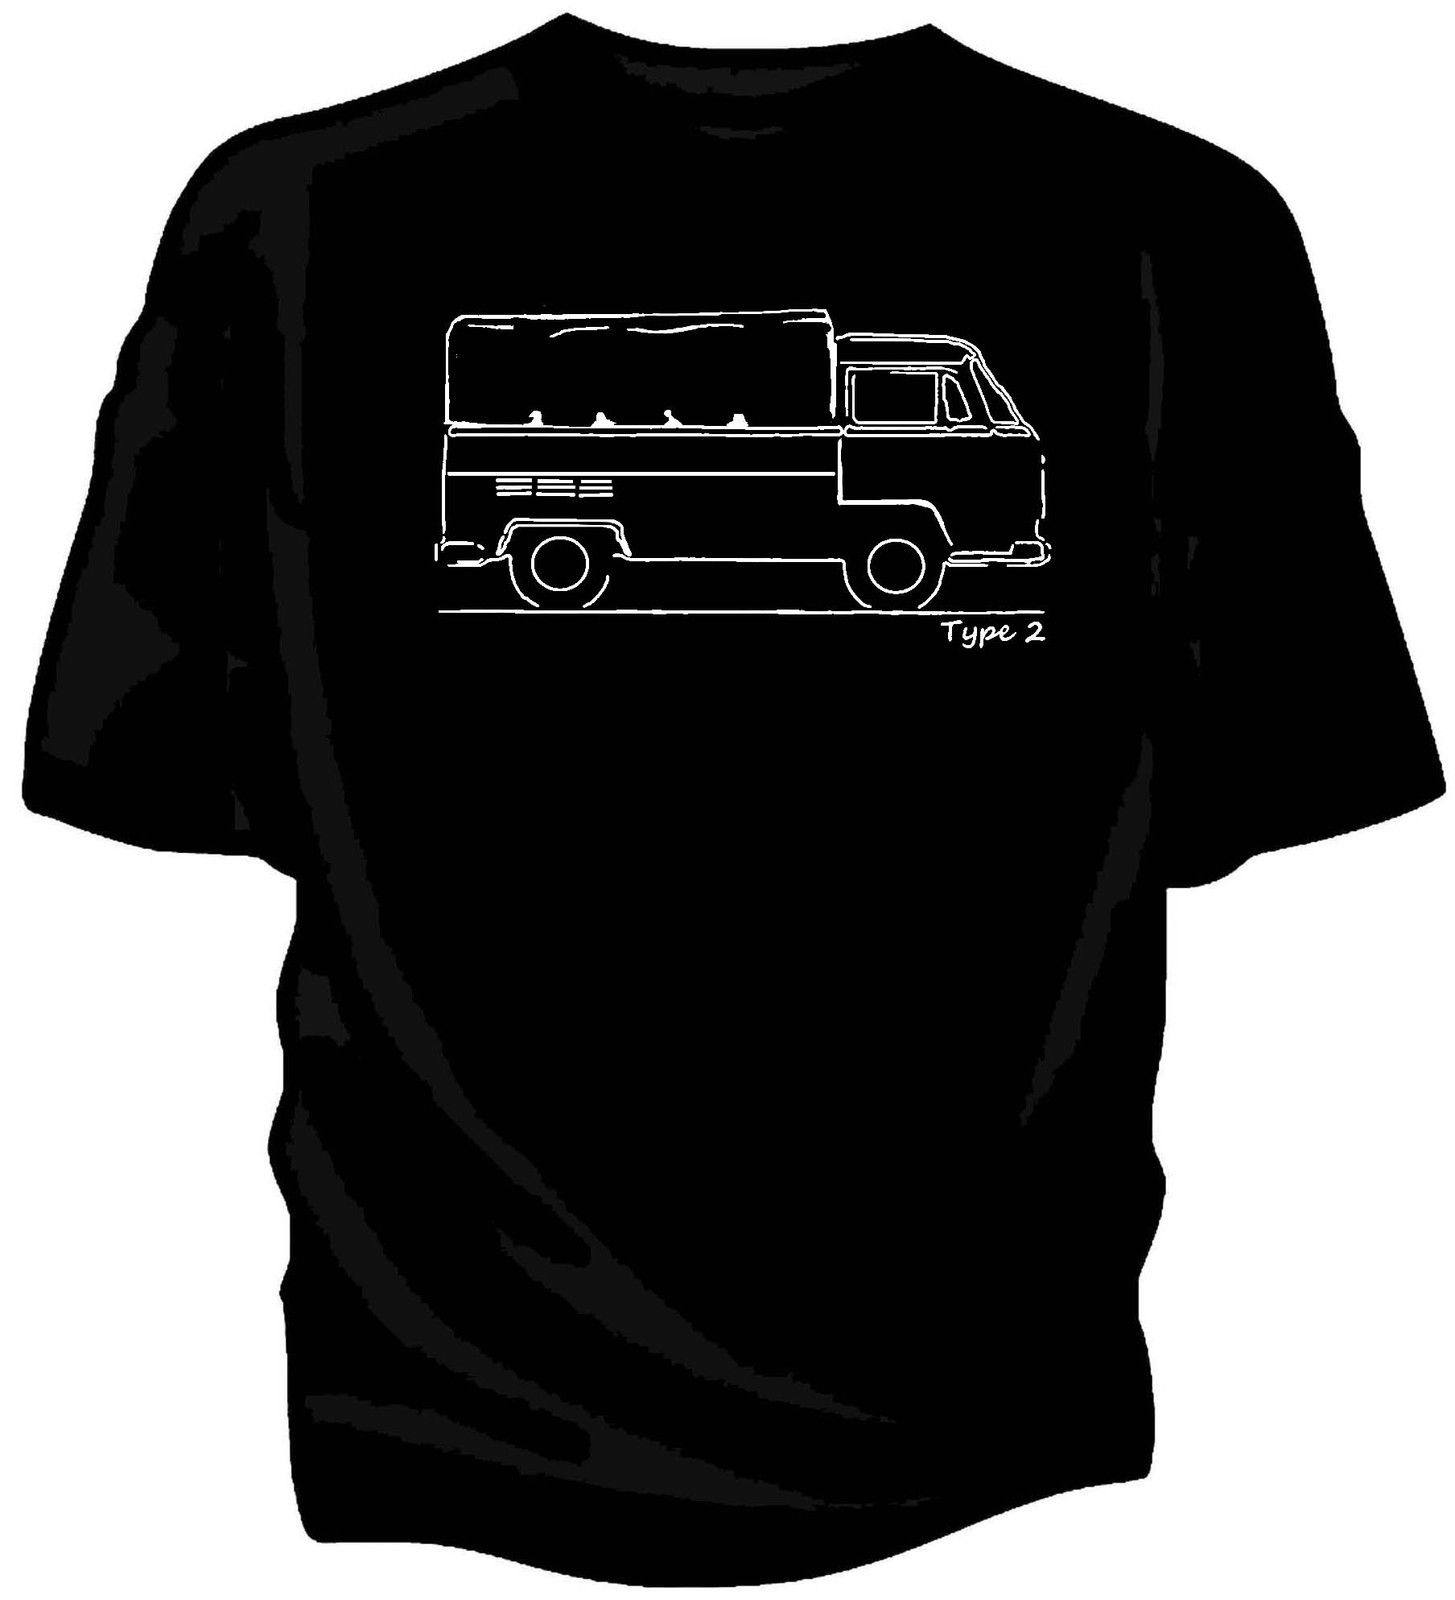 VW Bus Bay Window Single cab with canvas t-shirt.